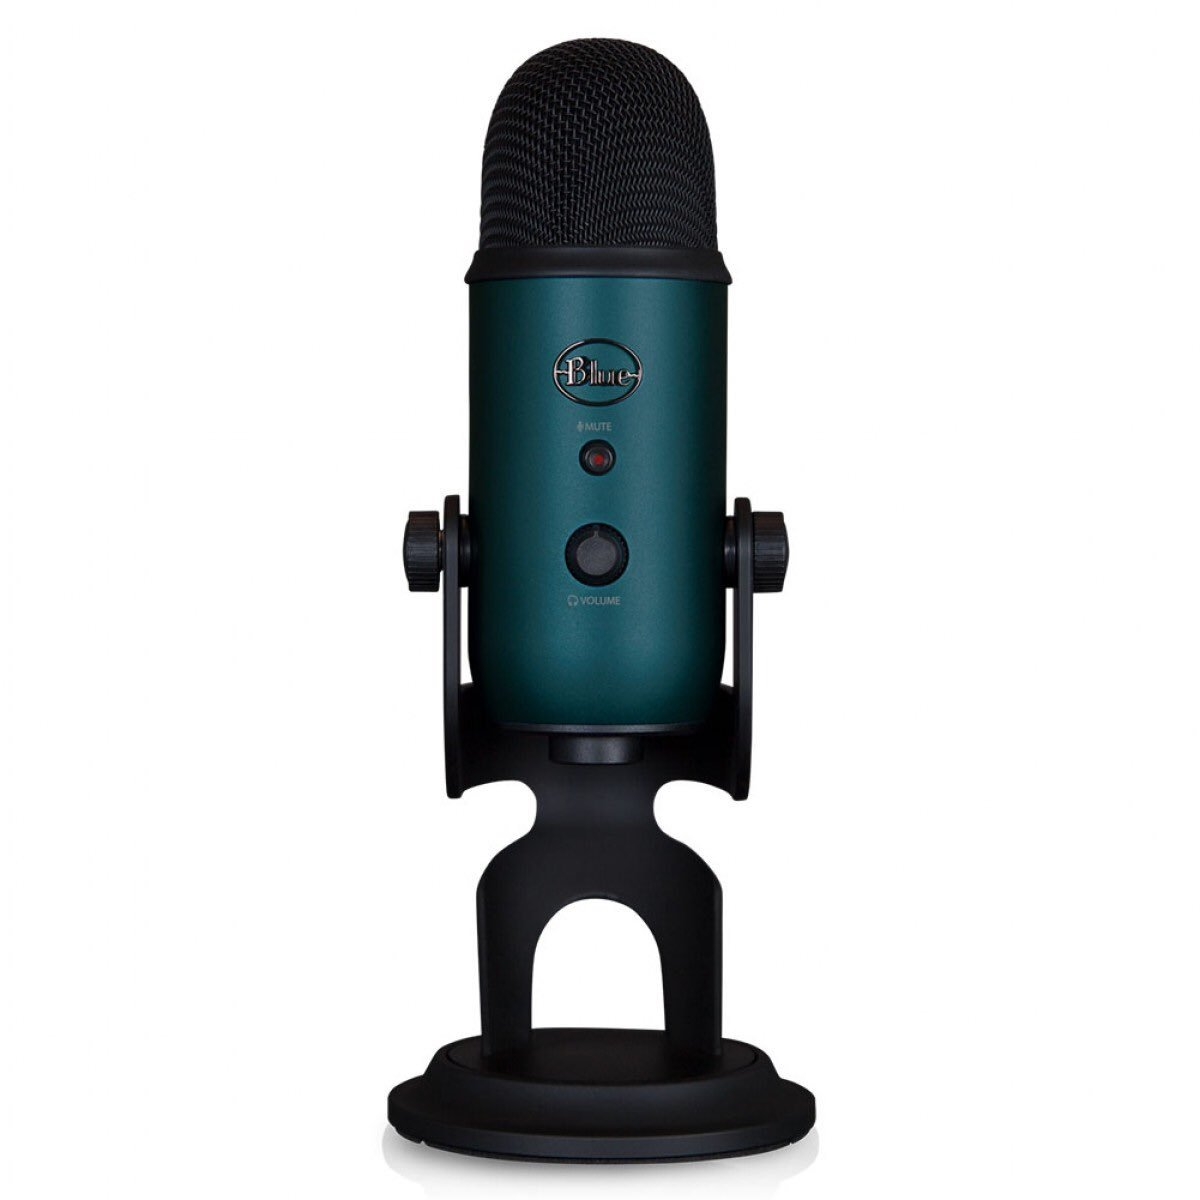 Any of you guys used the Blues Yeti 3-Capsule microphone? I'm trying to settle on a mic for streaming and I've read good things about it! 😄😄 #streaming #streamer #mixerstreamers #gamergirl #watchmixer #mixer